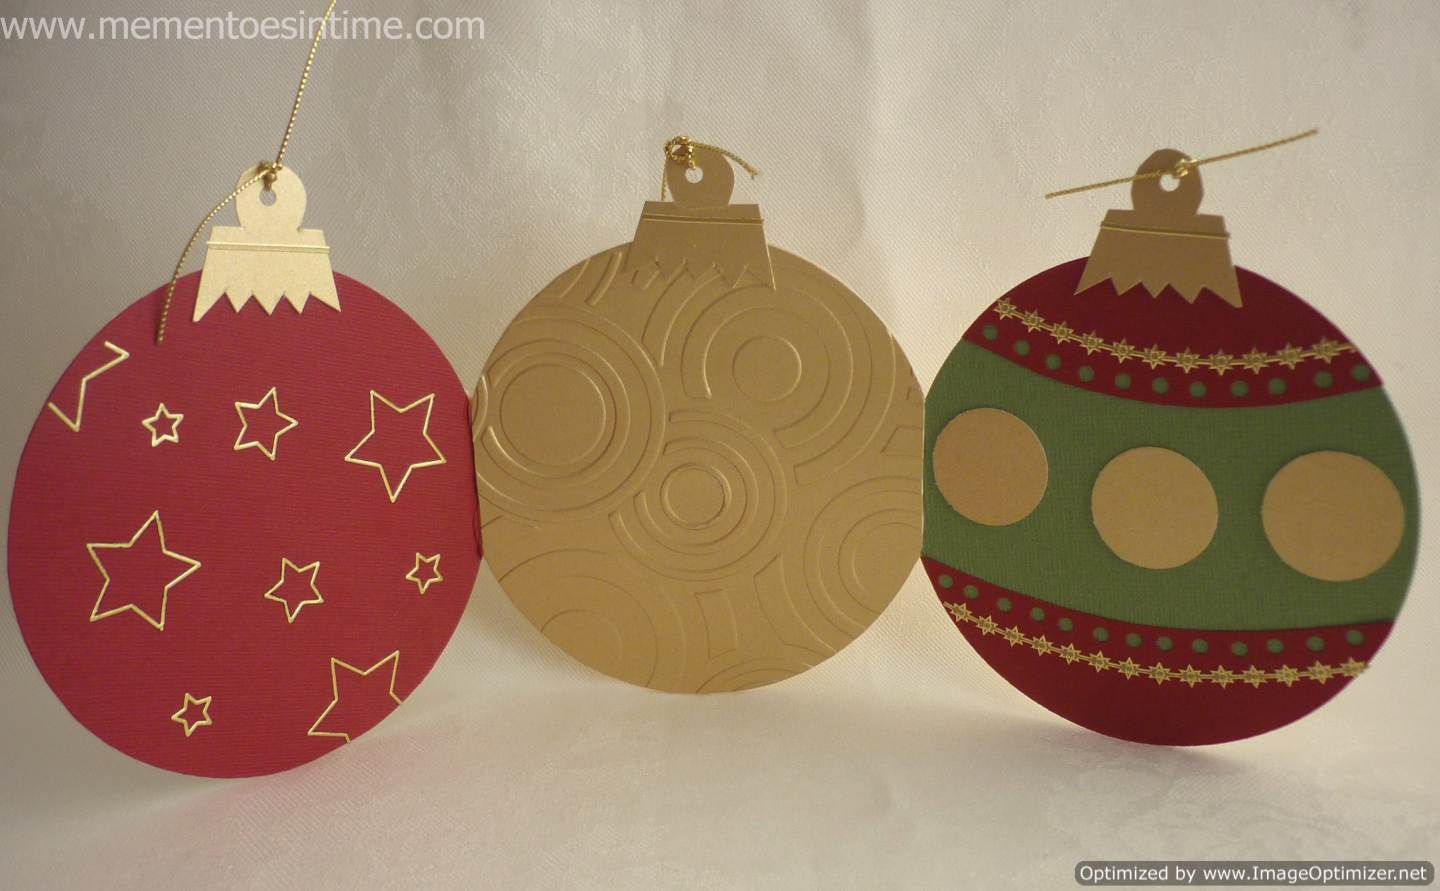 new free card template circle cards with more to come - Christmas Card Ornaments